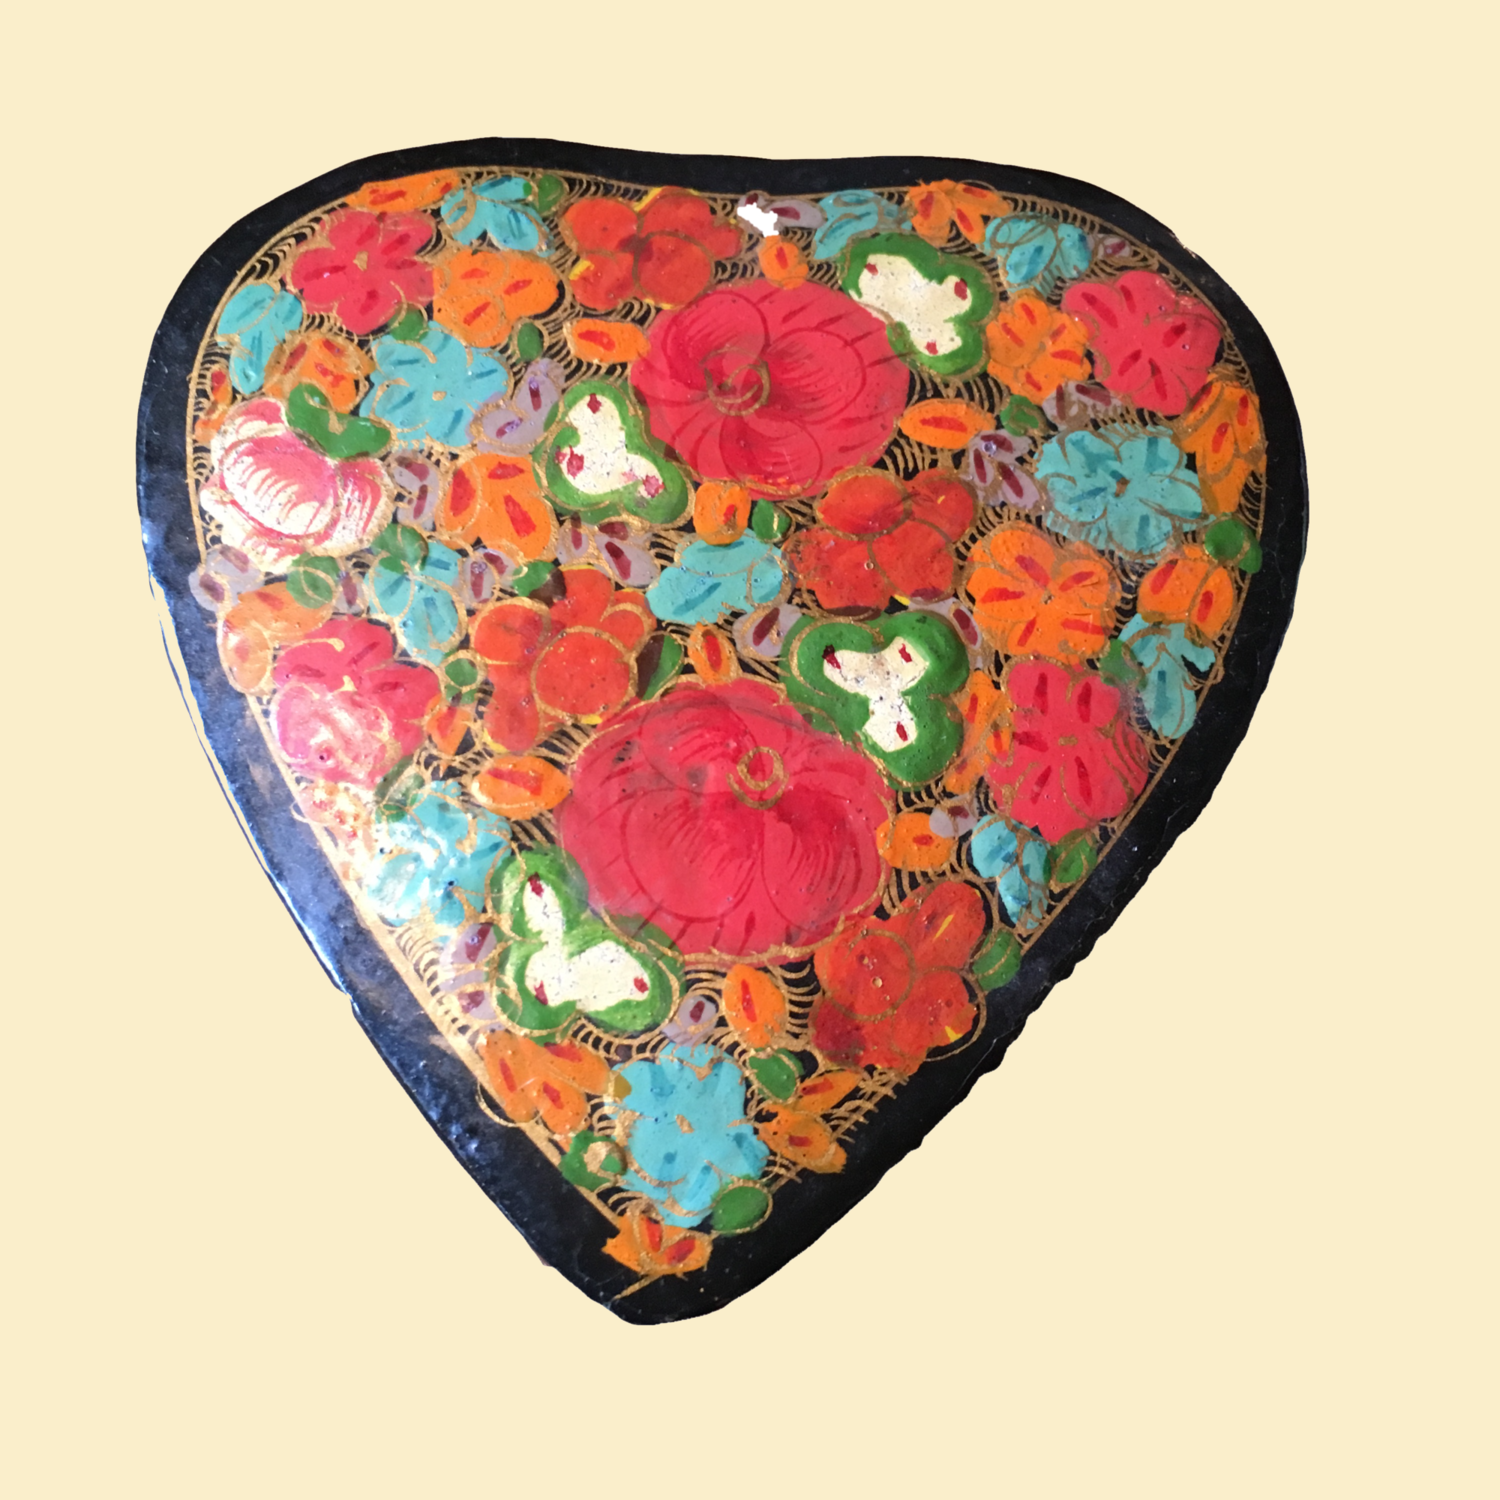 Papier Maché Lacquer Heart Shaped Box